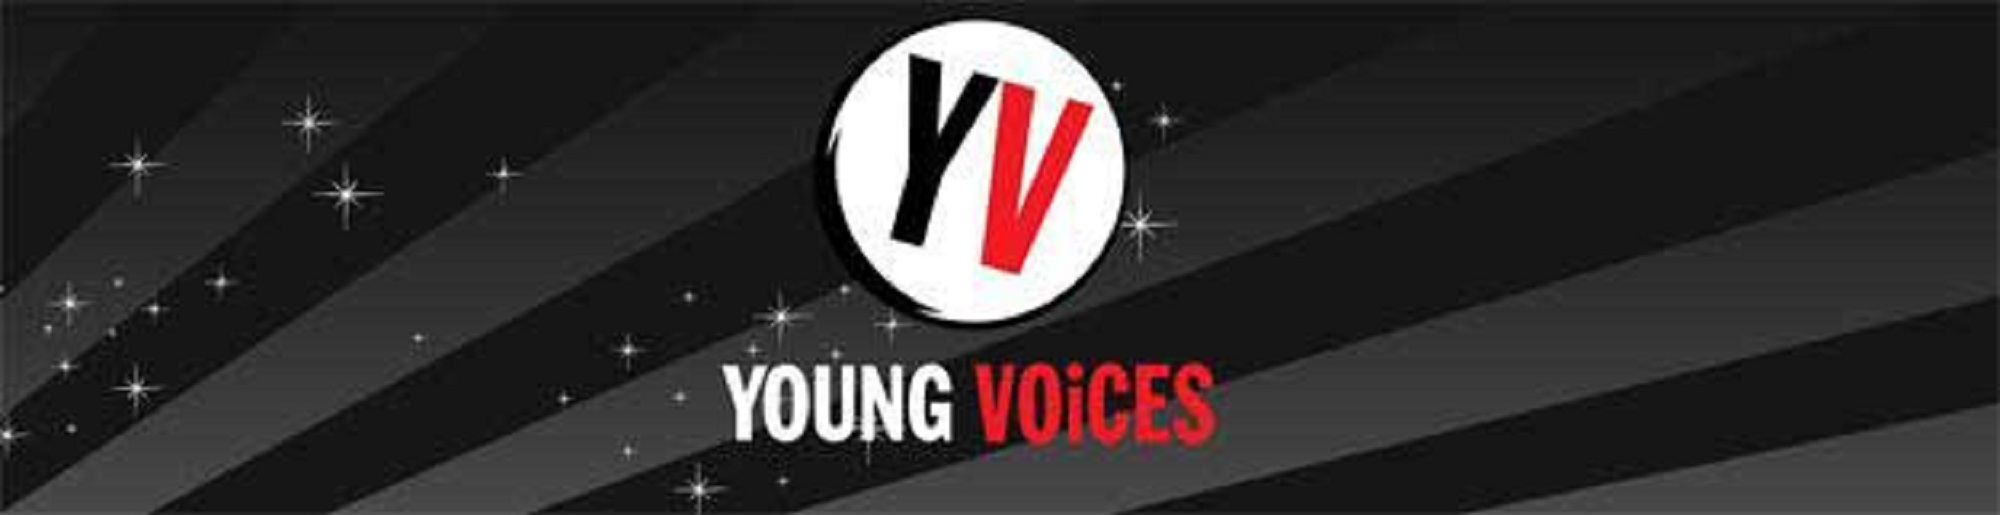 Young voices feature